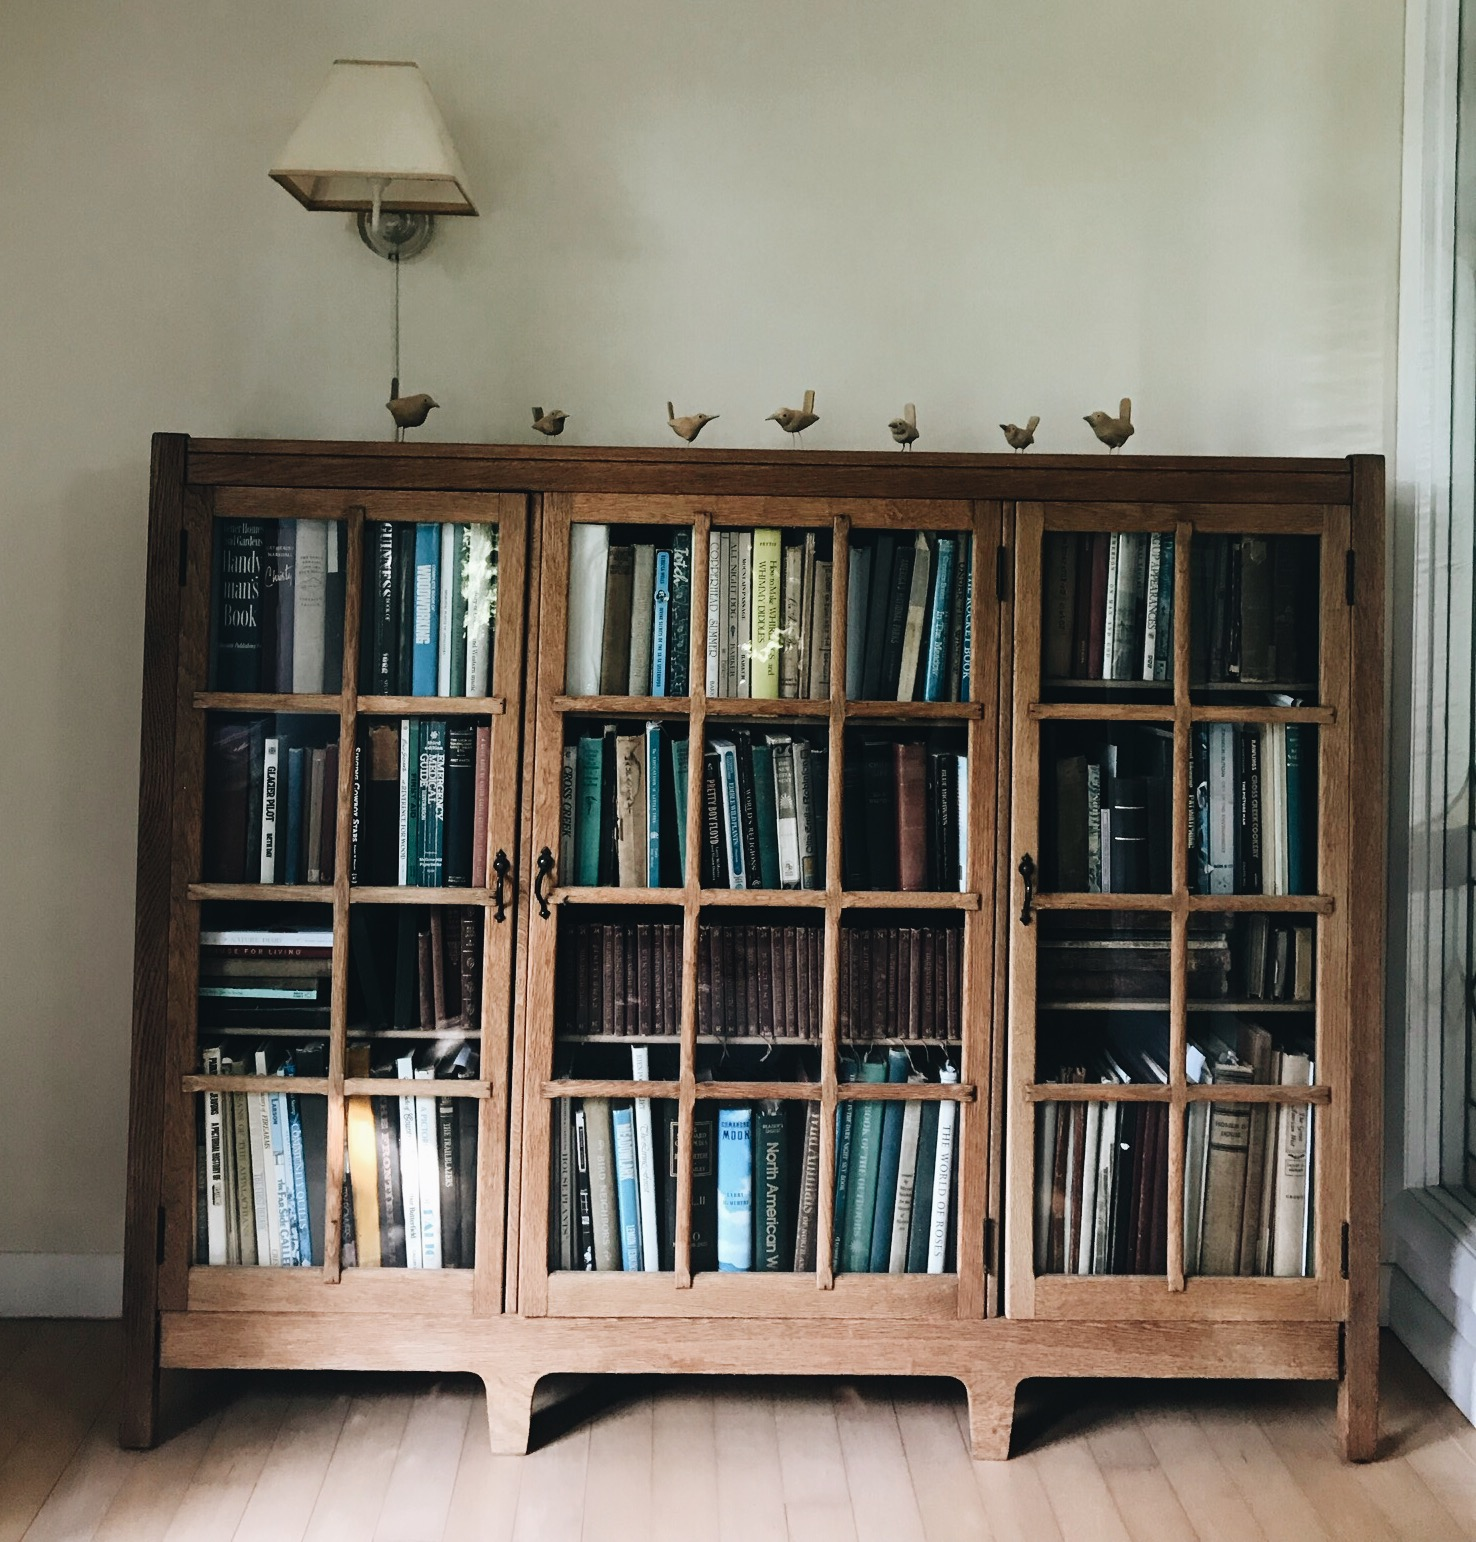 The bookcase is a family heirloom from Barbara's grandparents. The birds sitting on top were hand carved by Hugh.